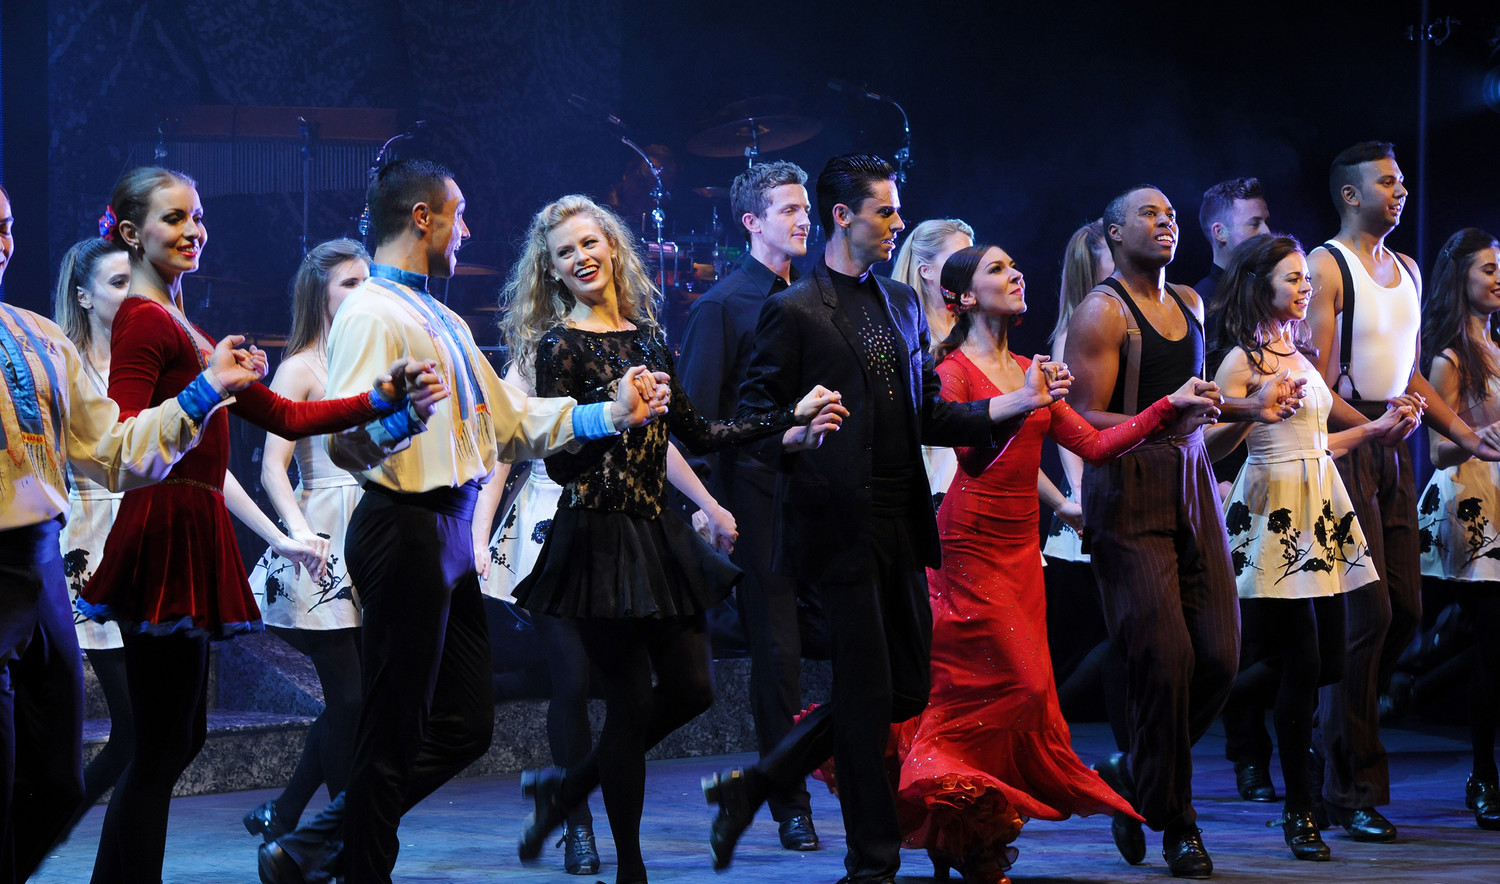 The internationally acclaimed Irish dance troupe Riverdance will be among those performing for Pope Francis during his Aug. 25-26 trip to Ireland for World Meeting of Families in Dublin, organizers announced July 19.